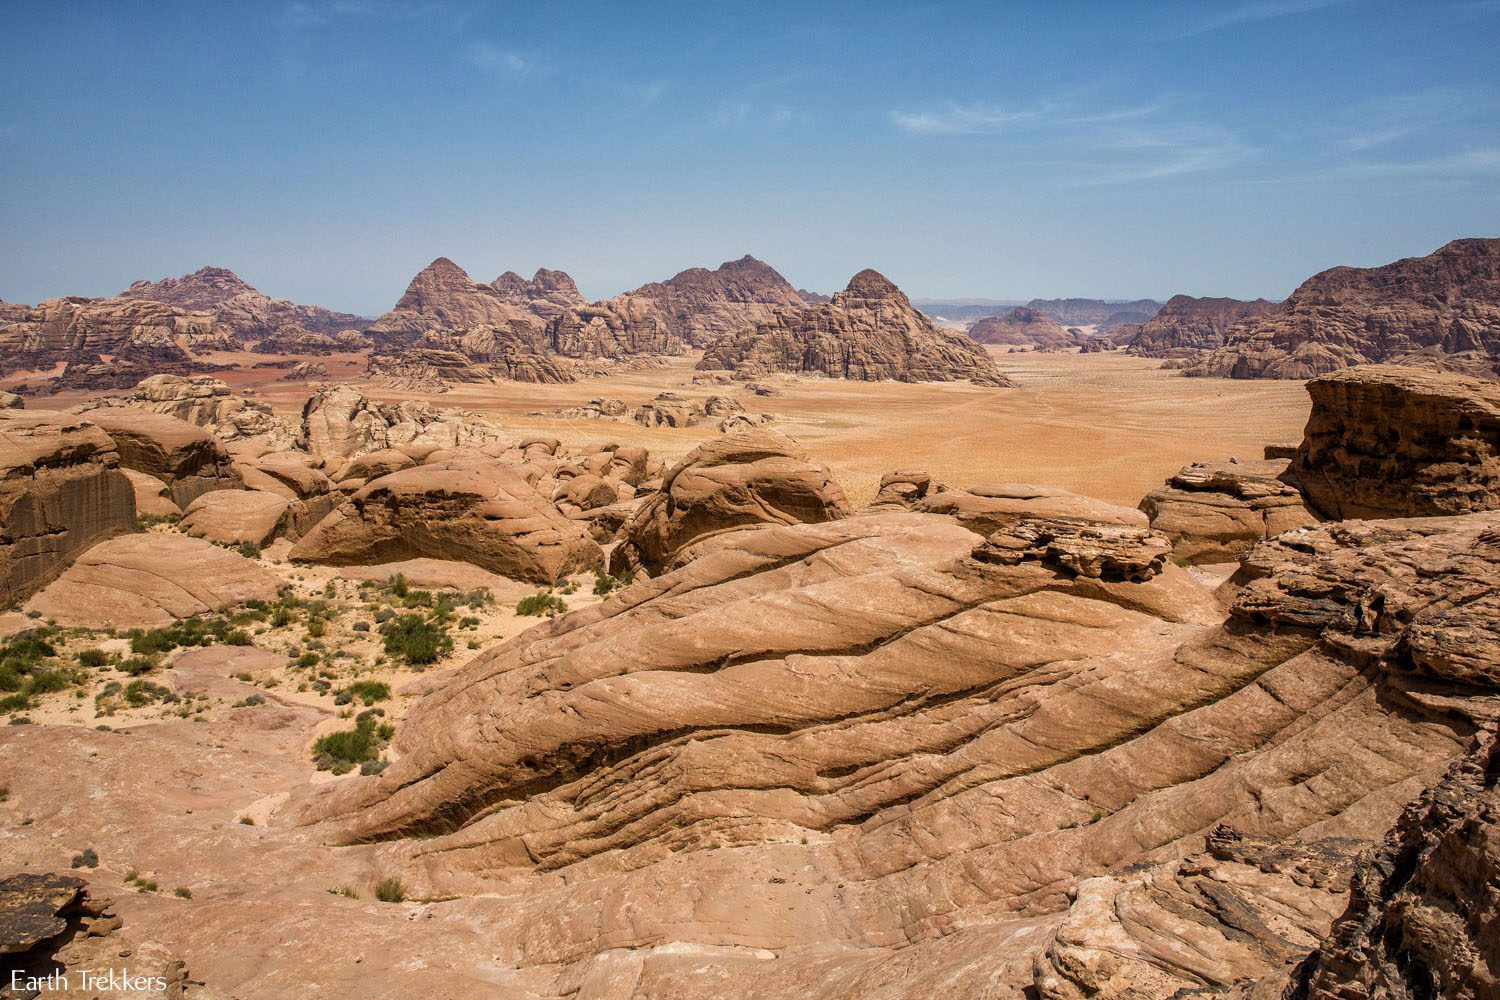 Wadi Rum from Jebel Burdah Arch